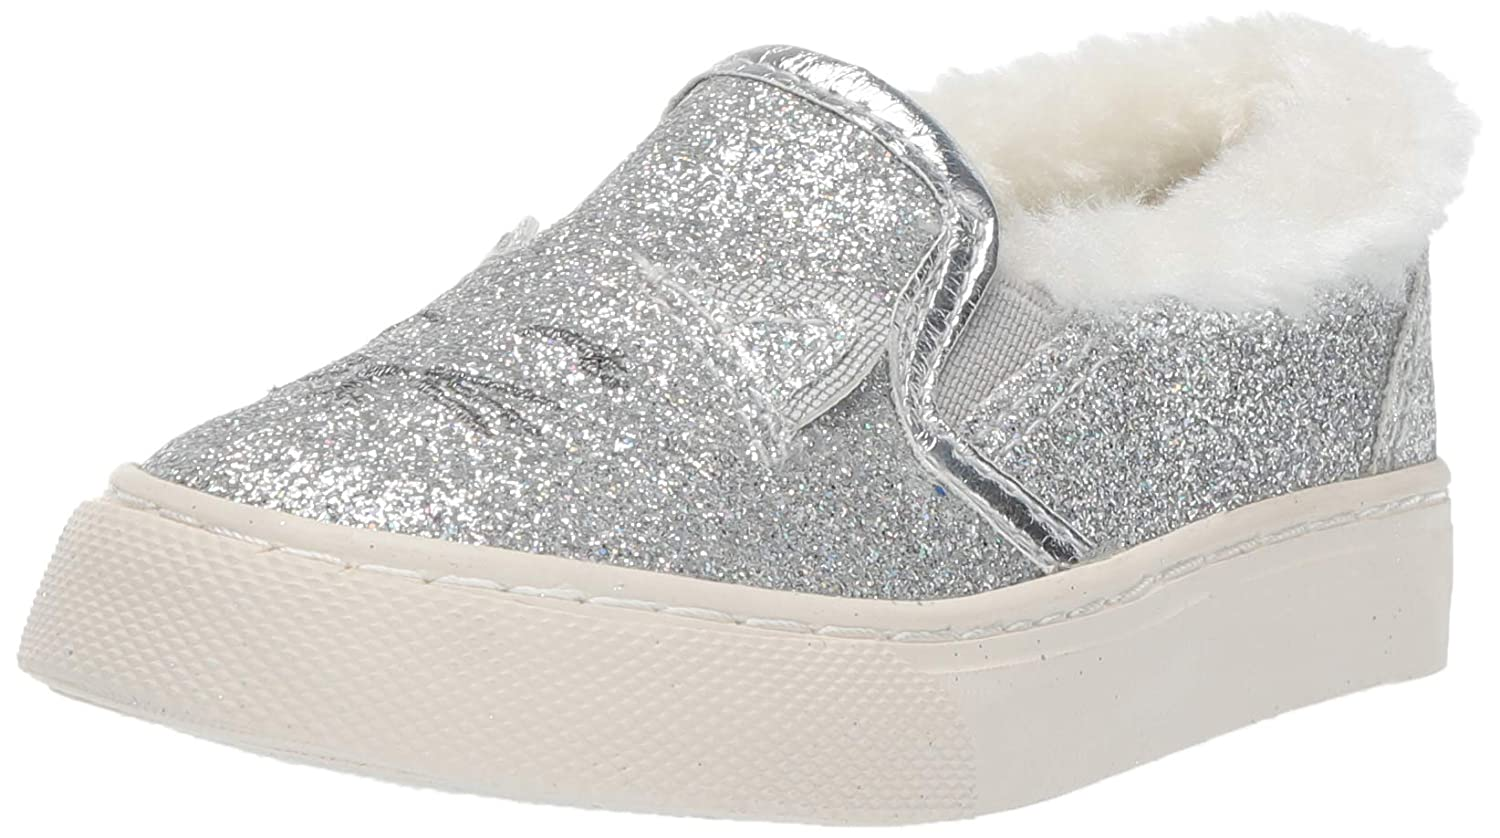 The Children's Place Kids' Slip on Loafers The Children' s Place